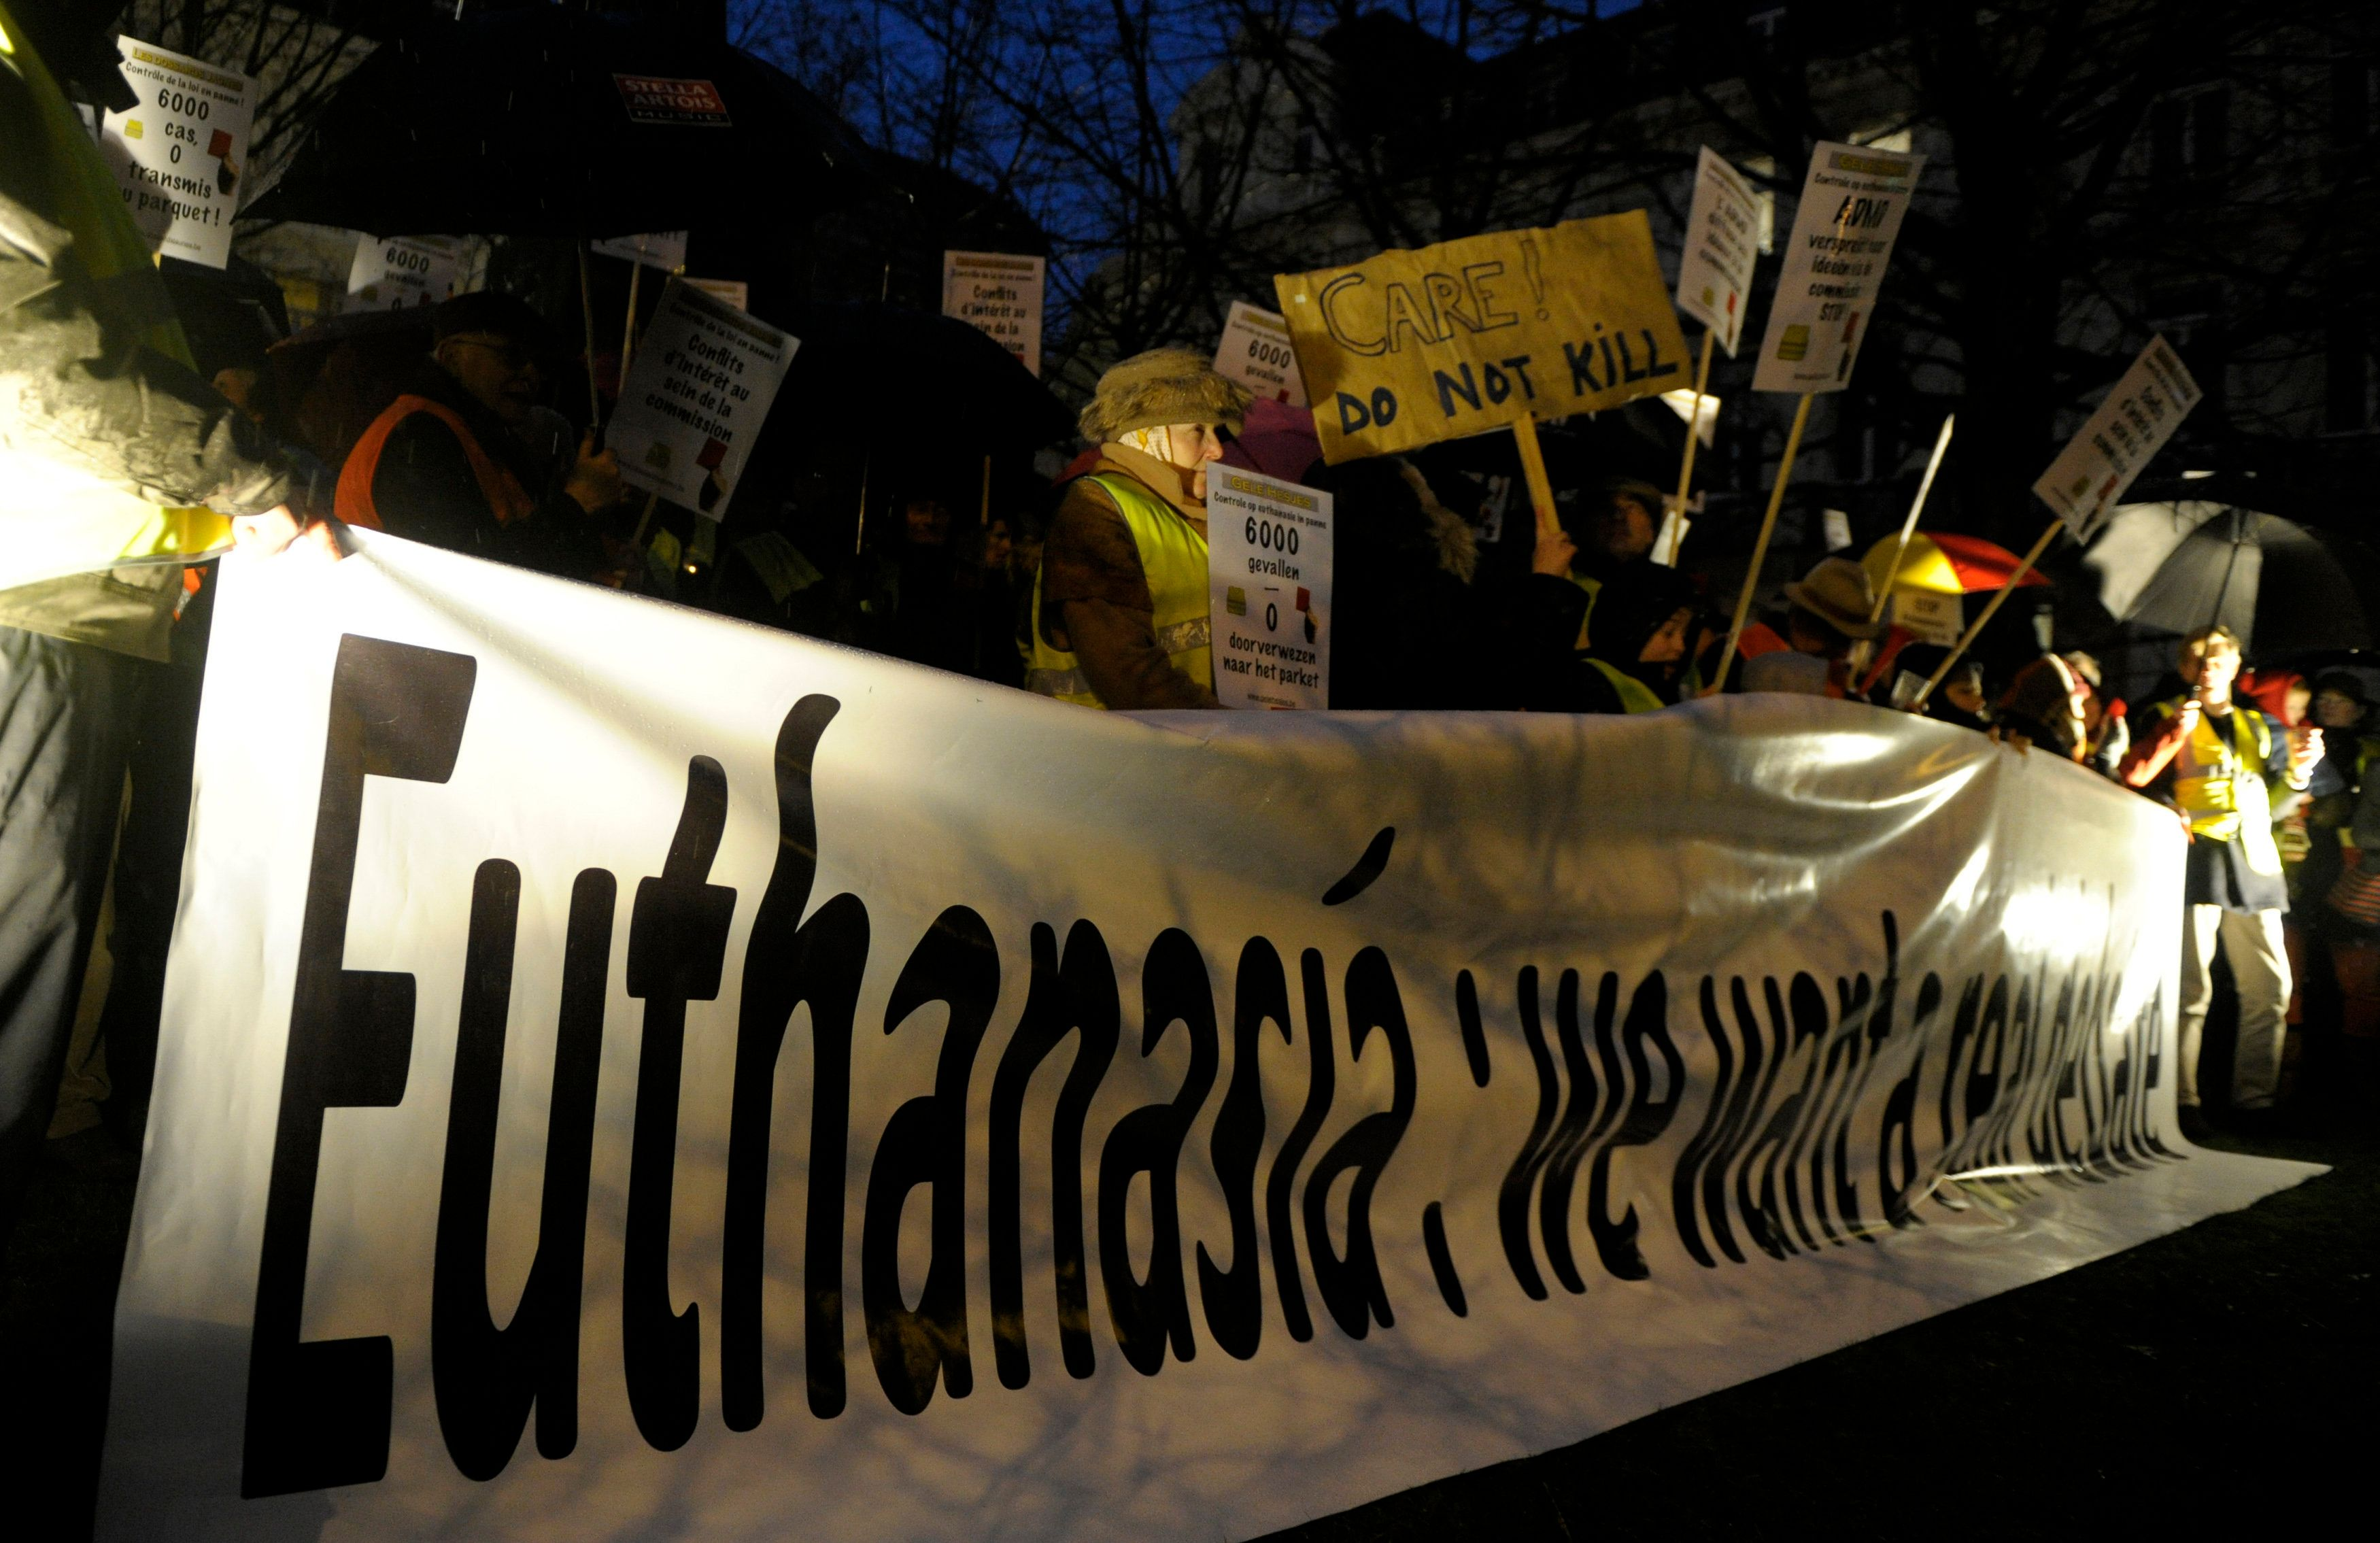 """Protesters, who call themselves the """"yellow jackets"""", hold banners and placards as they demonstrate against a new law authorizing euthanasia for children, in Brussels February 11, 2014. Belgium is expected to pass a new law on Thursday, introducing the right to grant euthanasia for terminally ill children, making Belgium the first country in the world to remove the age limit for the procedure. The new law is going to the Belgian Parliament with MP's expected to pass it after breaking what is an almost universal taboo, when in December last year the country's Senate voted it through a 50-17 majority.  REUTERS/Laurent Dubrule (BELGIUM  - Tags: POLITICS)"""